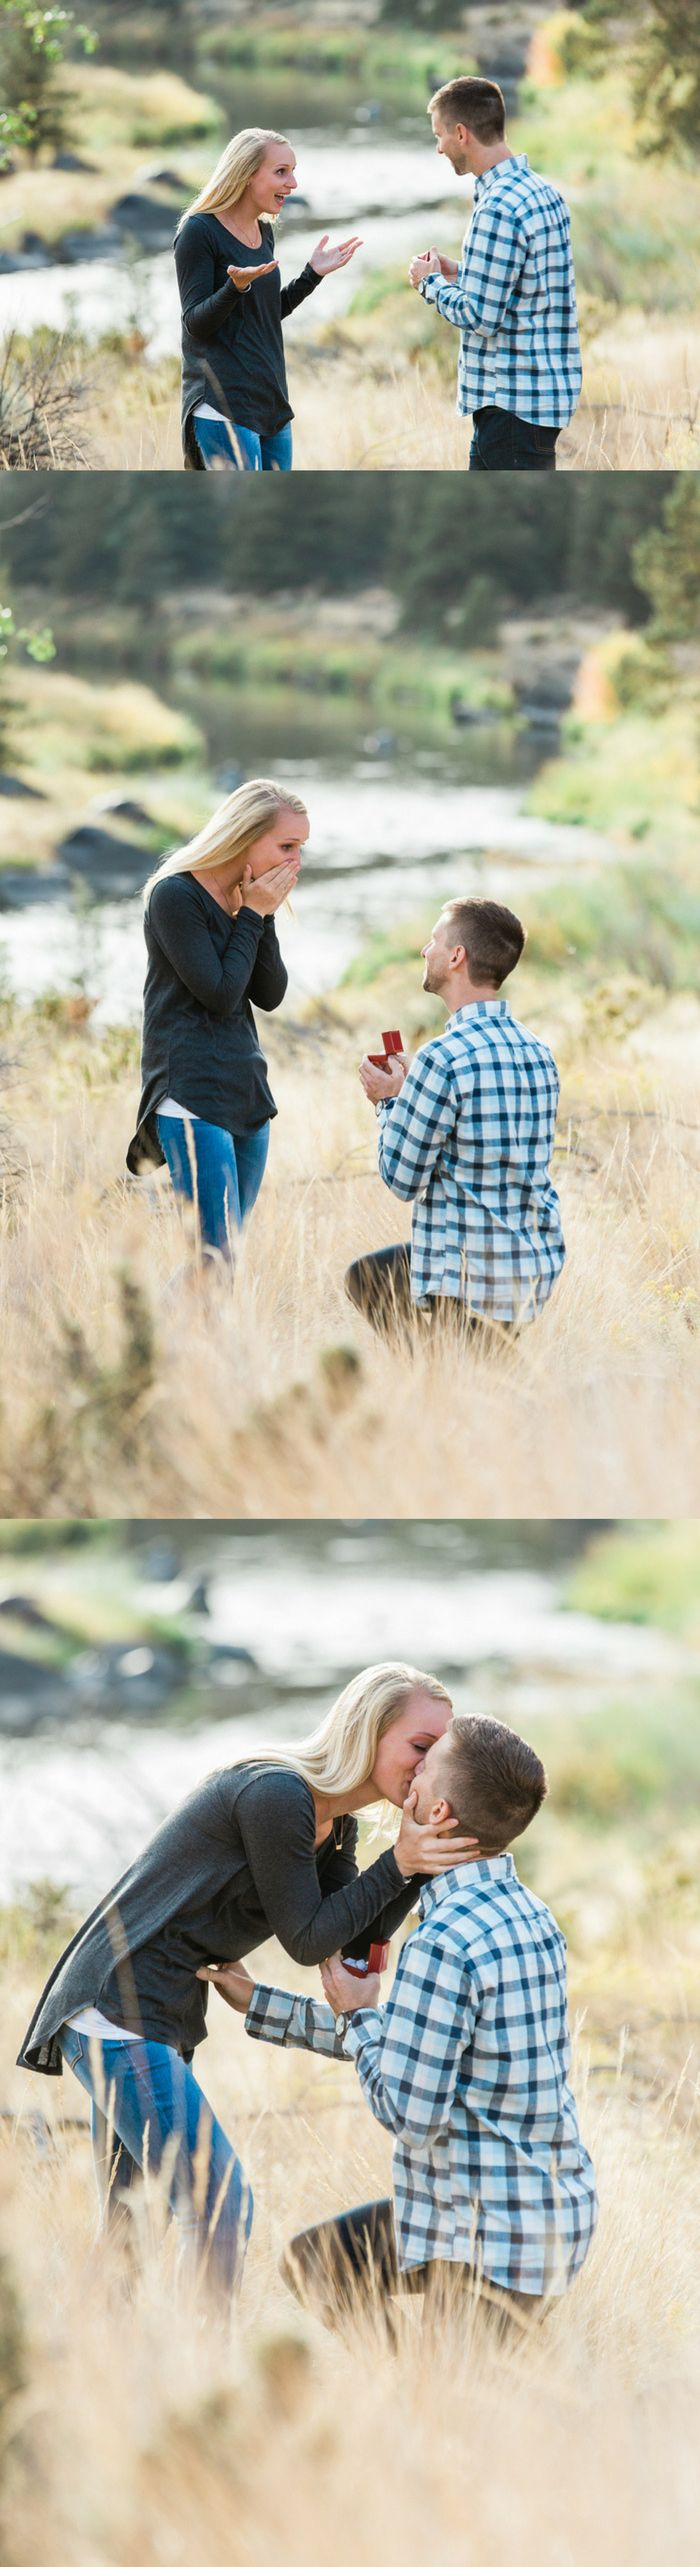 Alex And Courtneys Stunning Proposal On HowHeAsked